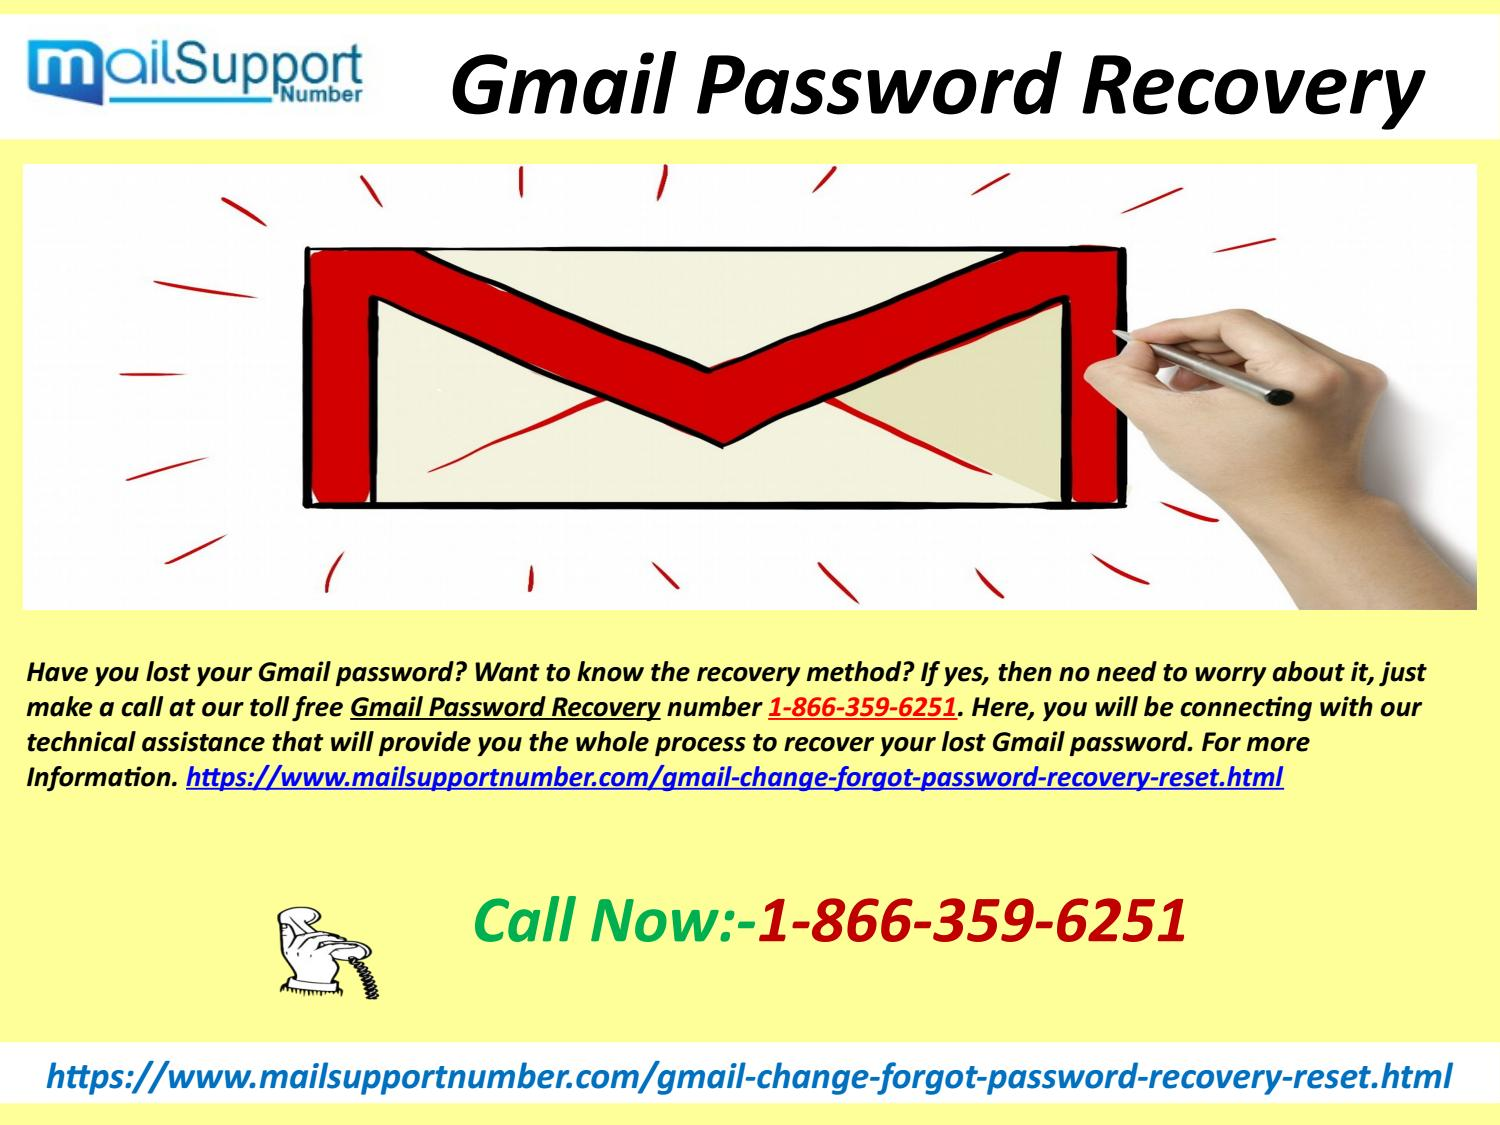 how to change a forgotten password in gmail